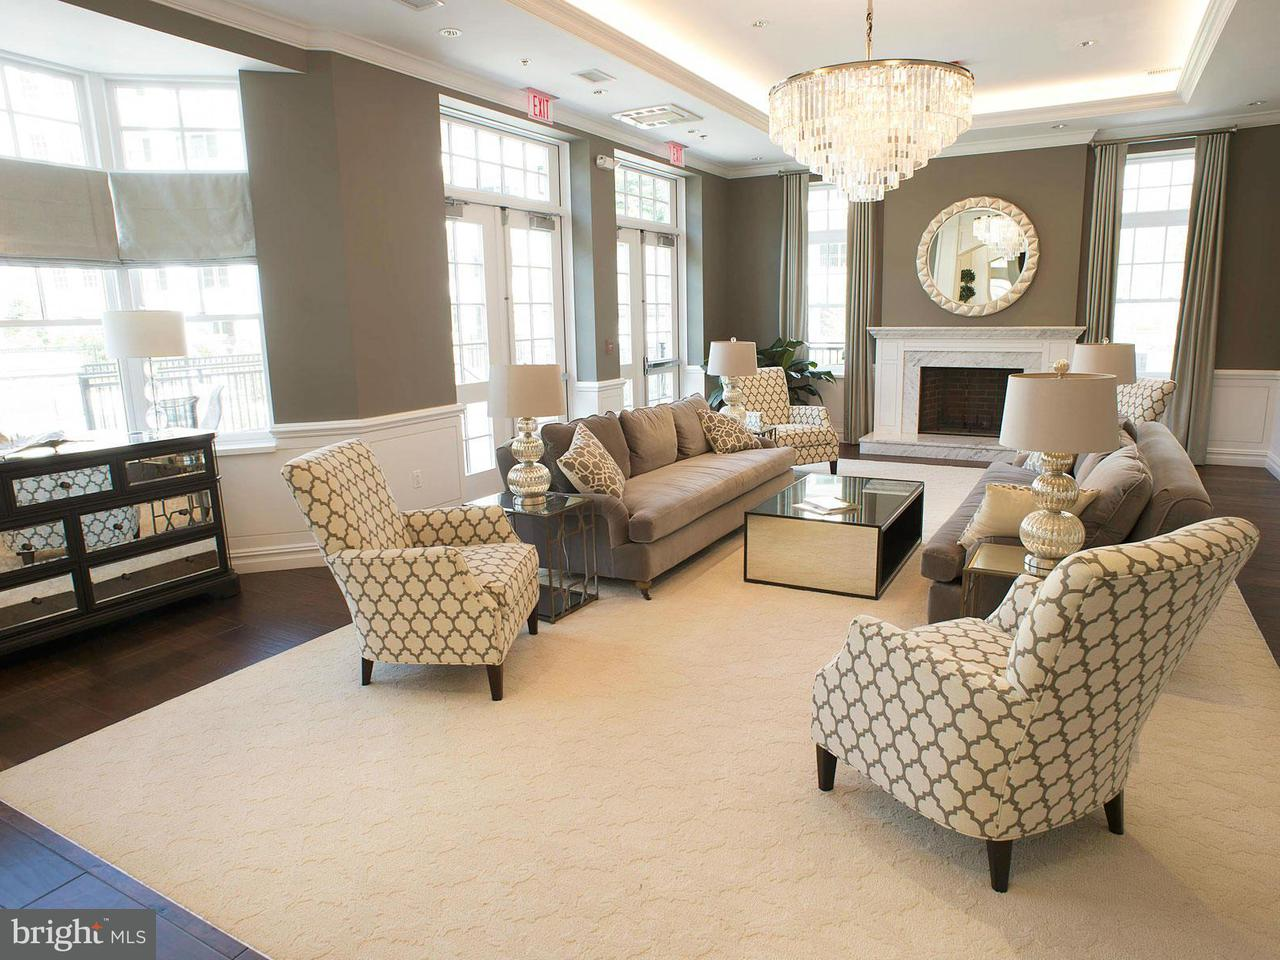 Additional photo for property listing at 8111 RIVER RD #144 8111 RIVER RD #144 Bethesda, Maryland 20817 États-Unis